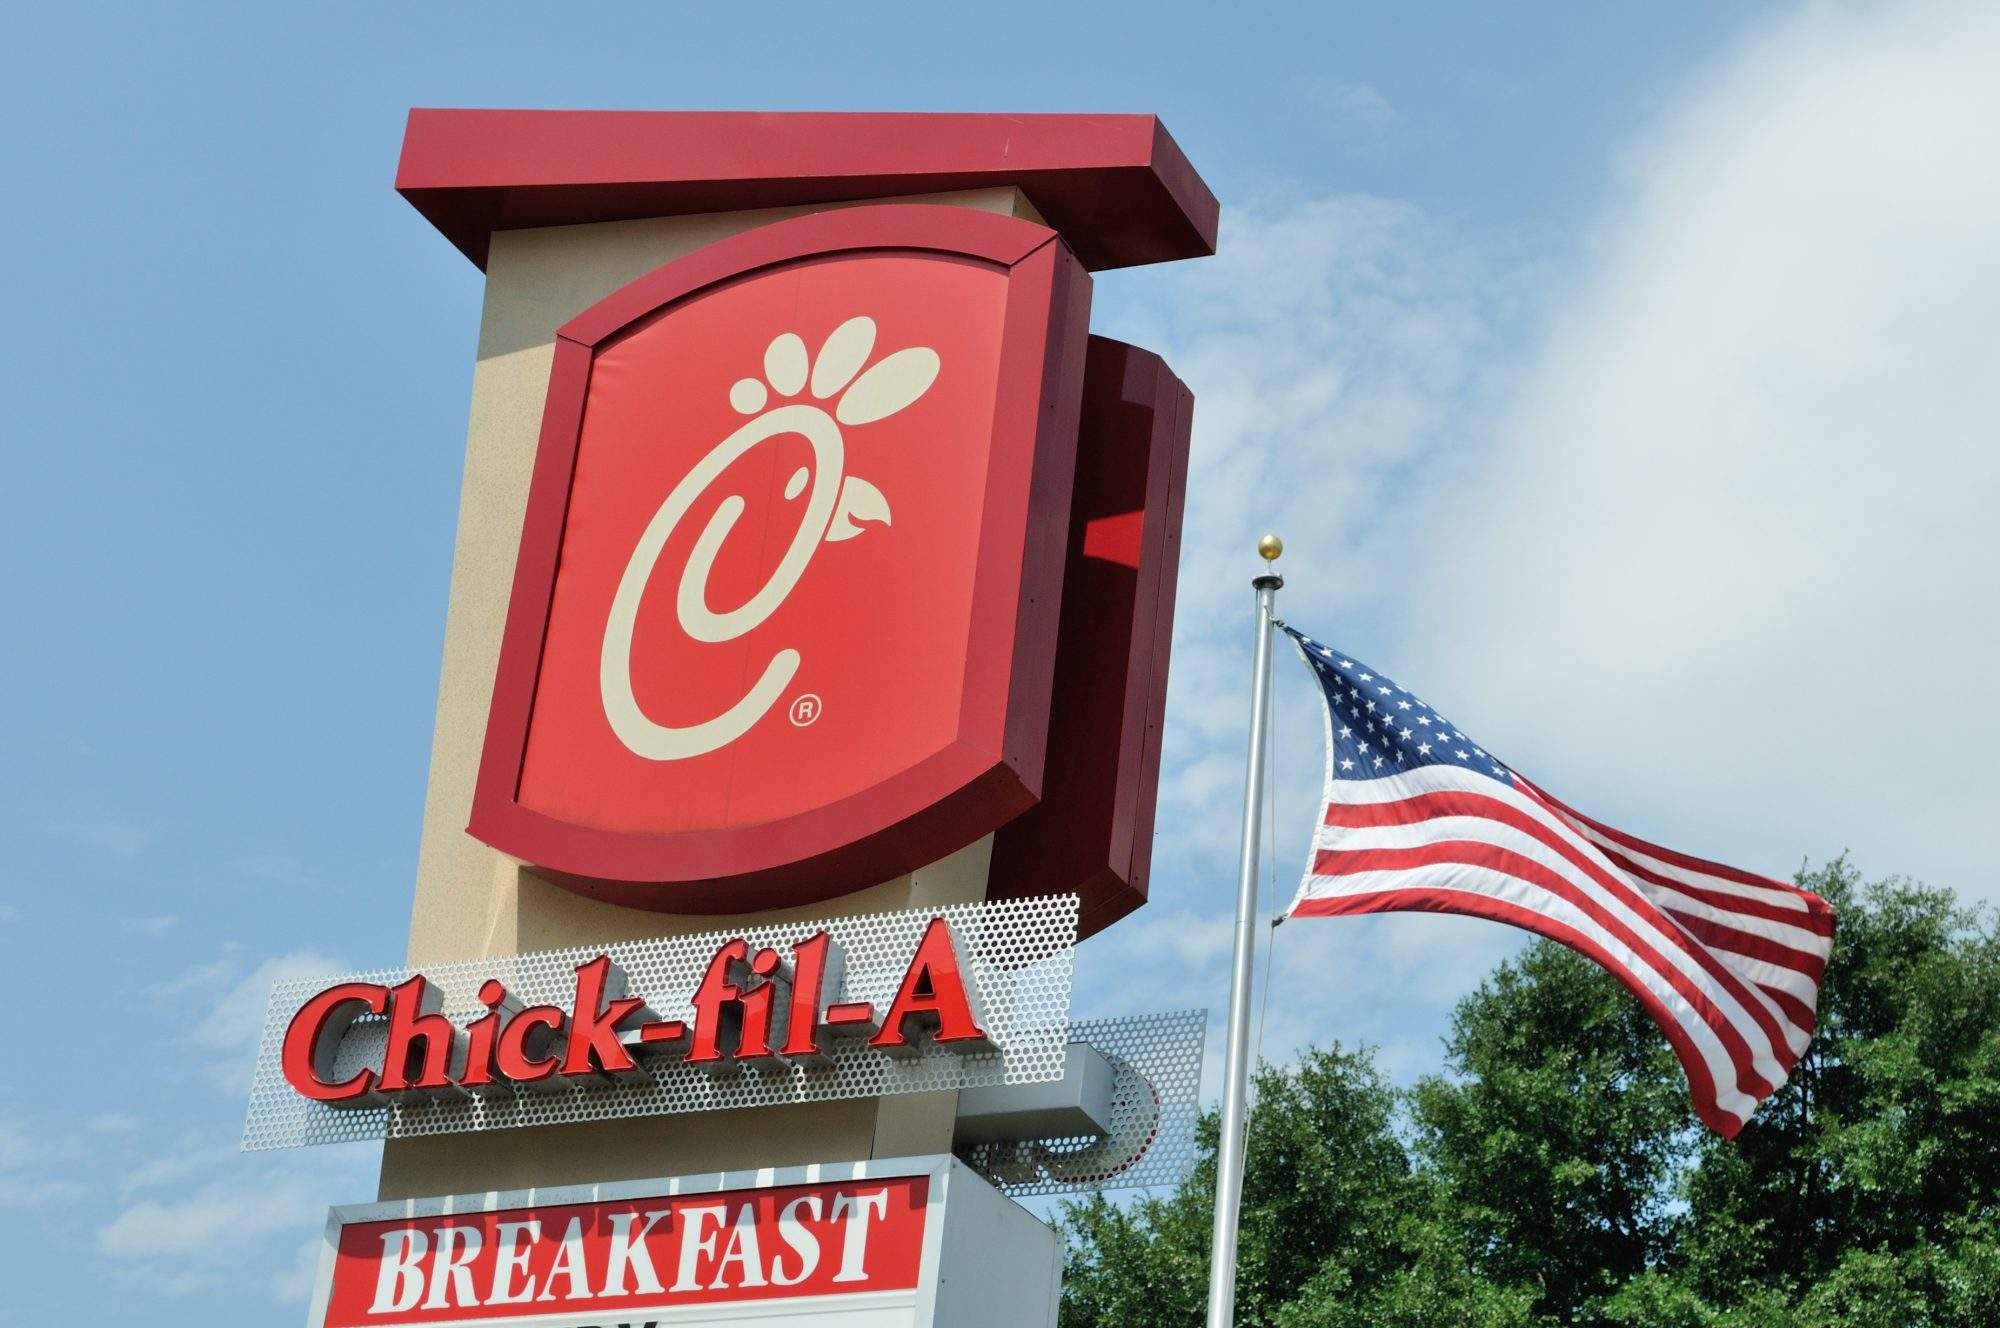 Chick-fil-A Breakfast